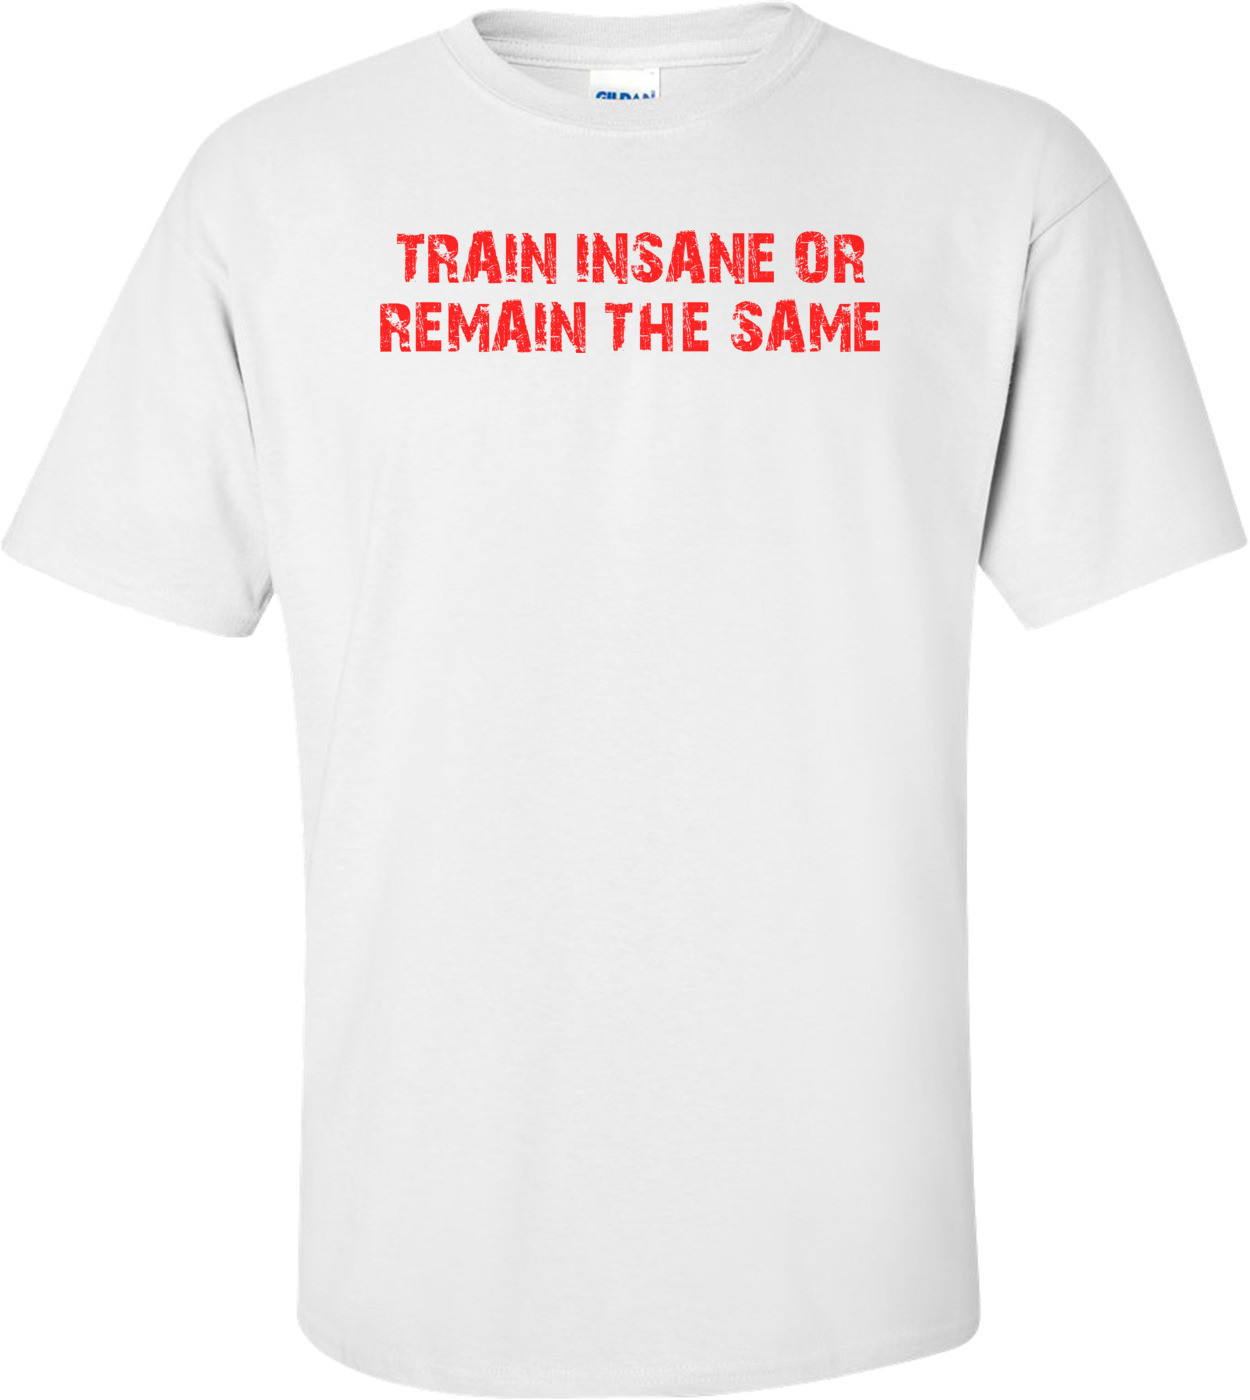 TRAIN INSANE OR REMAIN THE SAME Shirt